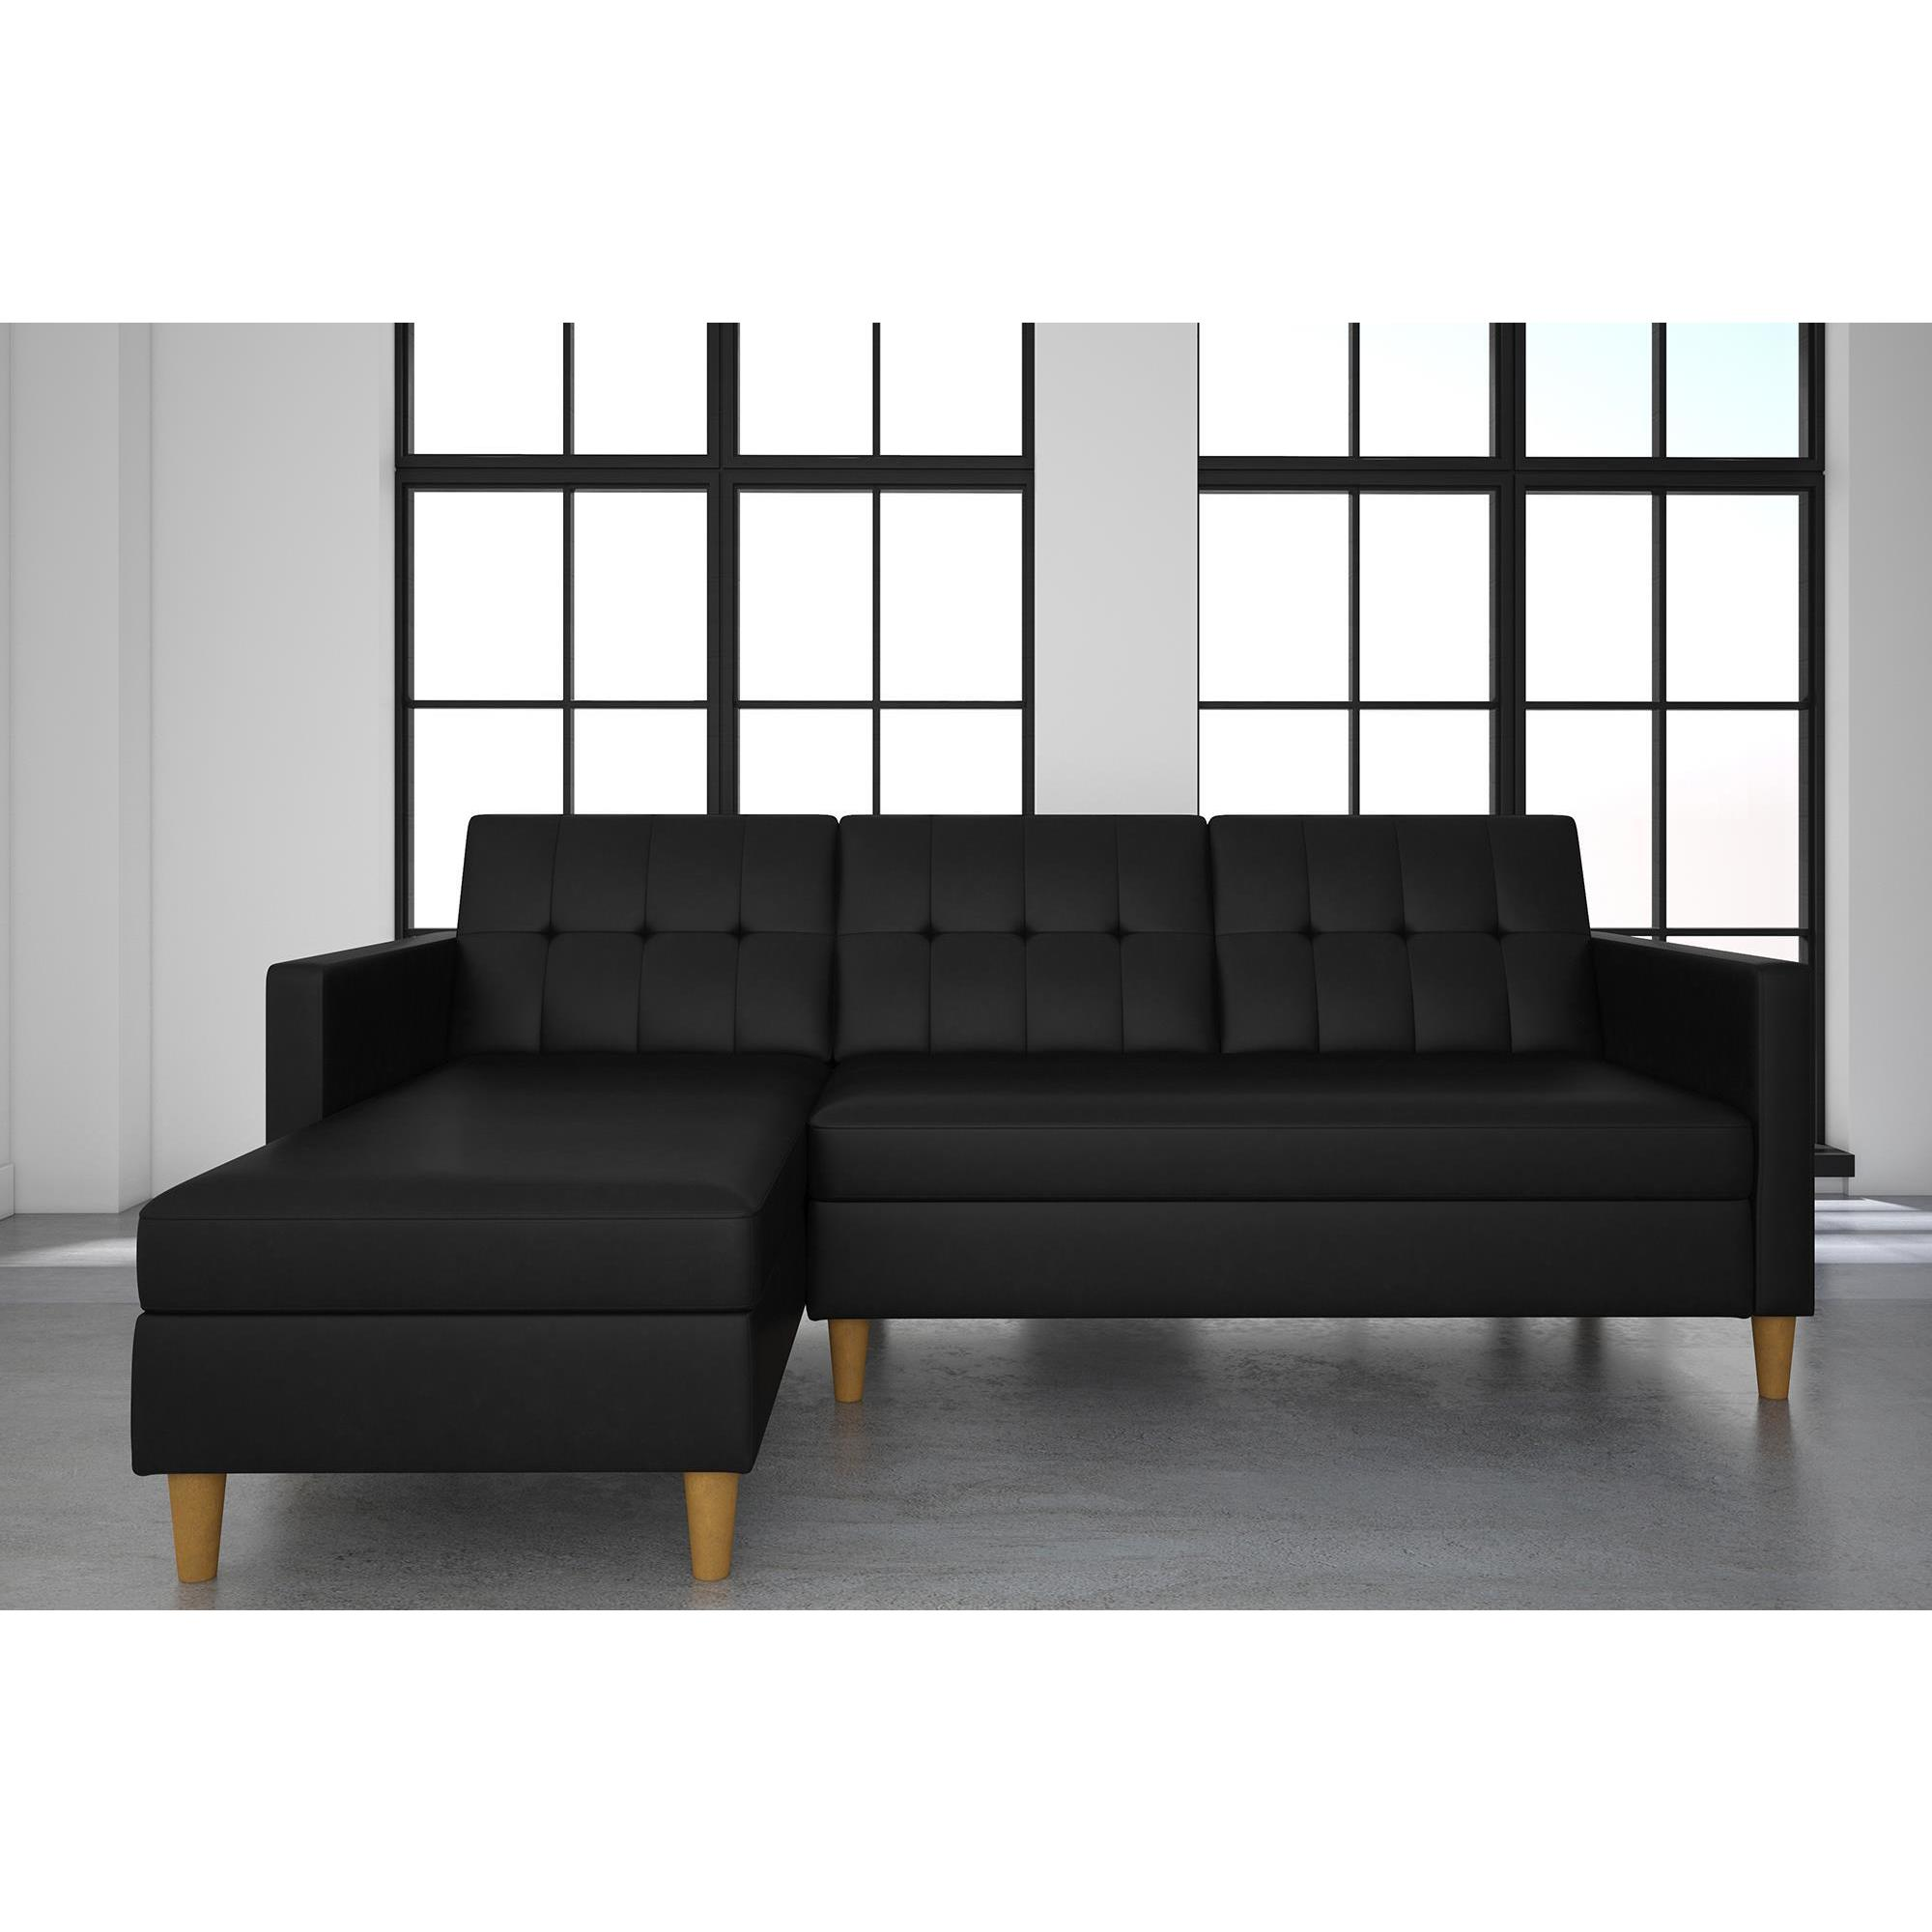 allegra dhp black plush couch walmart com for futons top futon less microfiber ip pillow